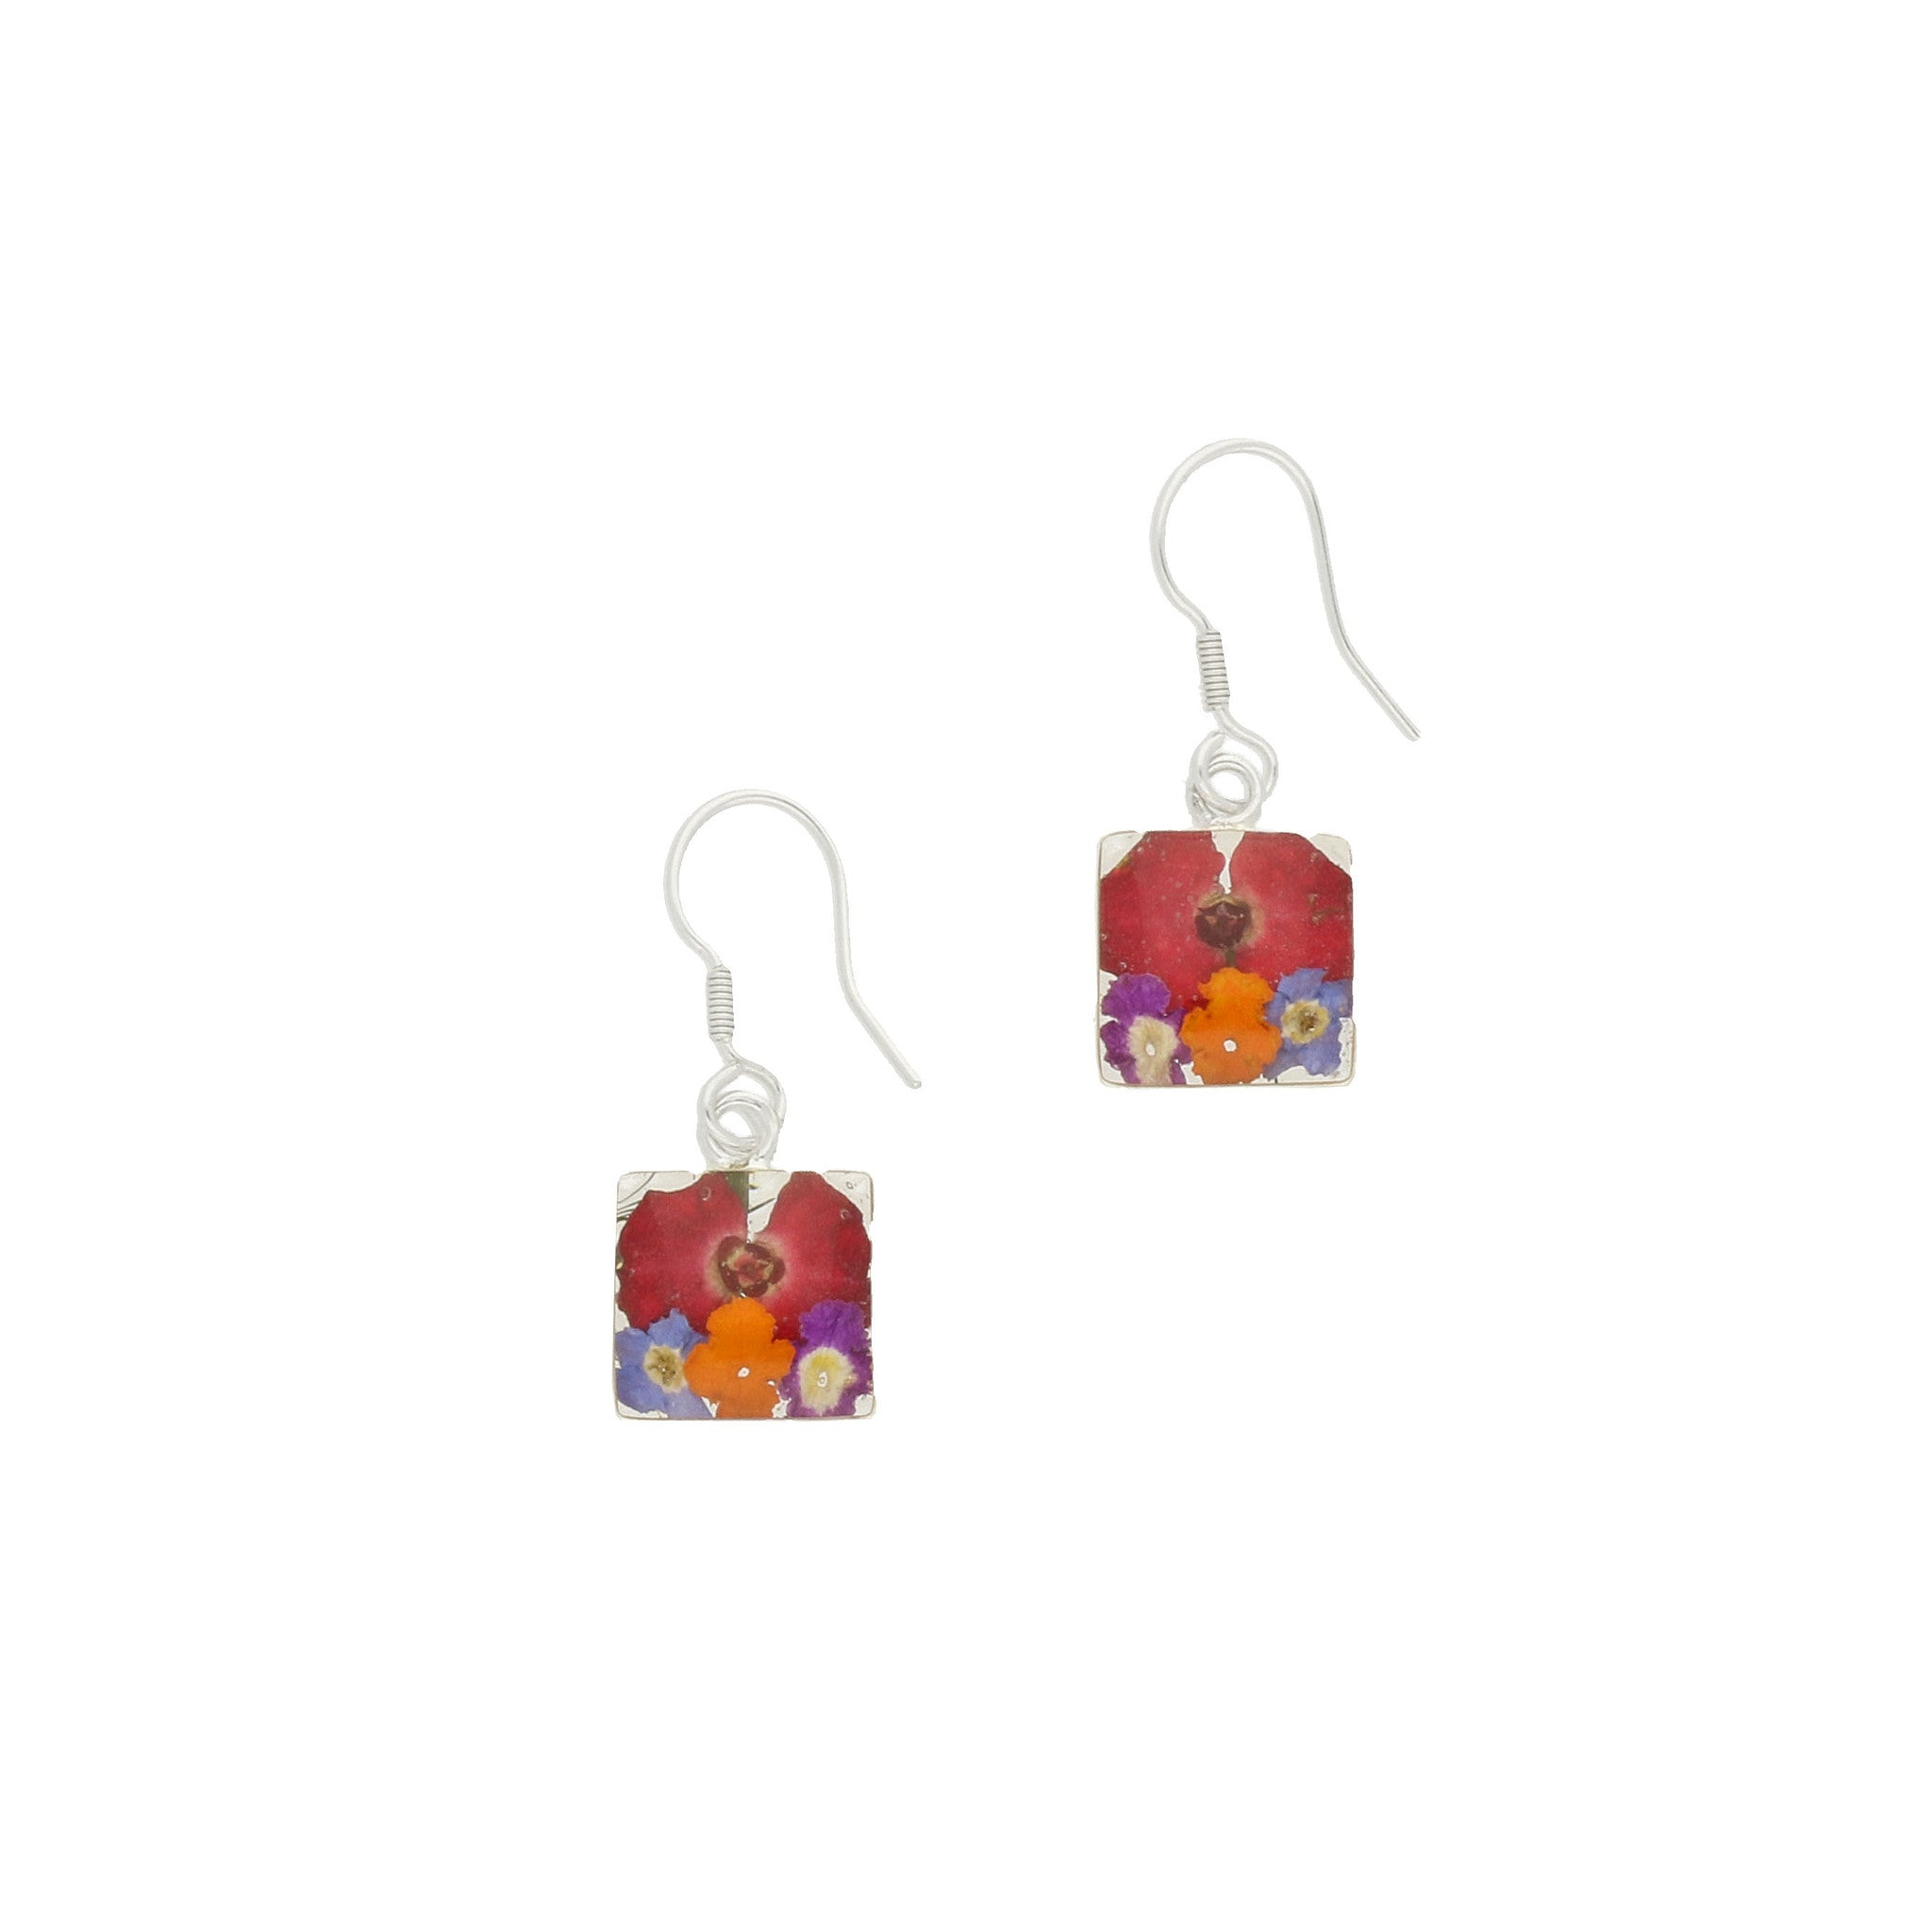 Floral Earrings Mixed Petals Square Drop Silver Small